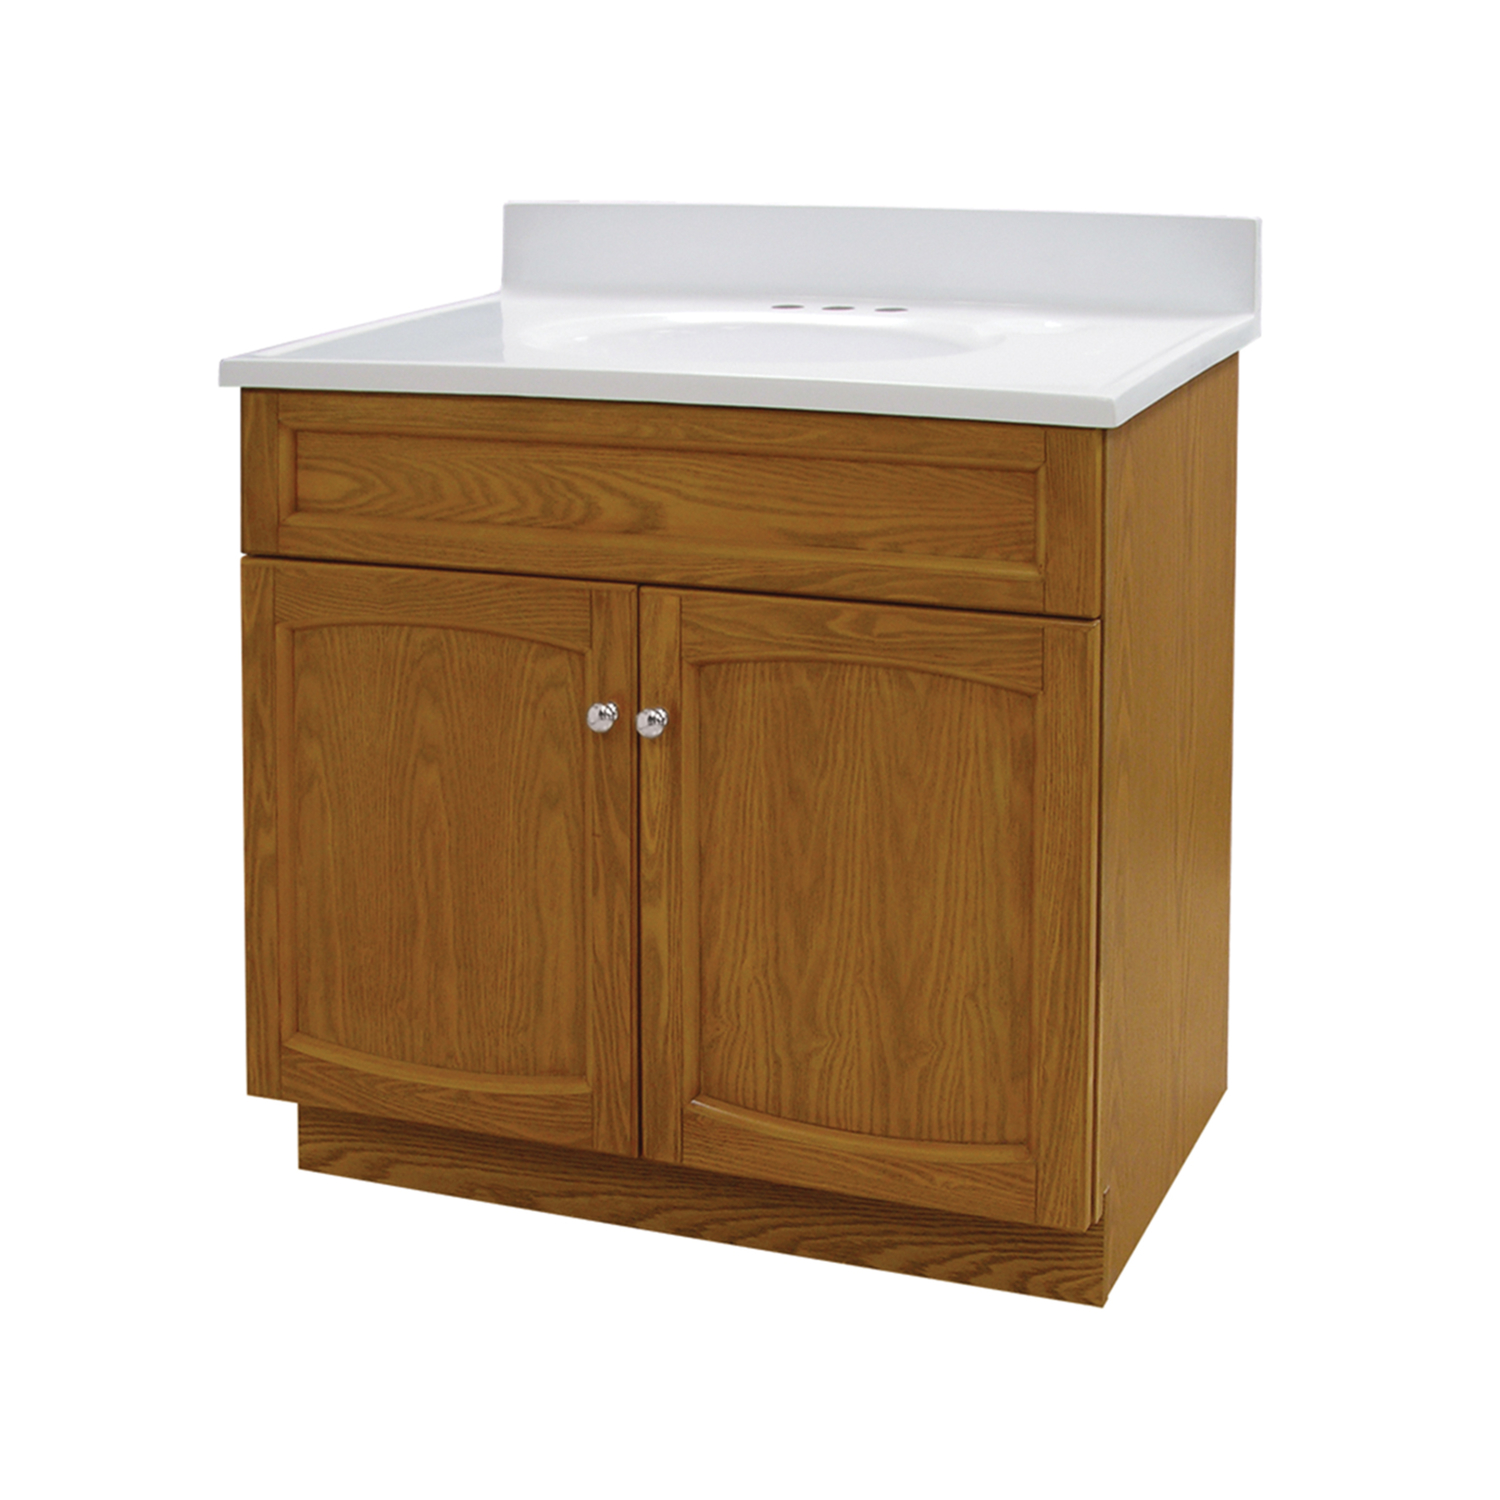 Heartland Vanity And Top Combo 30 In. X 30 In. X 18 In.